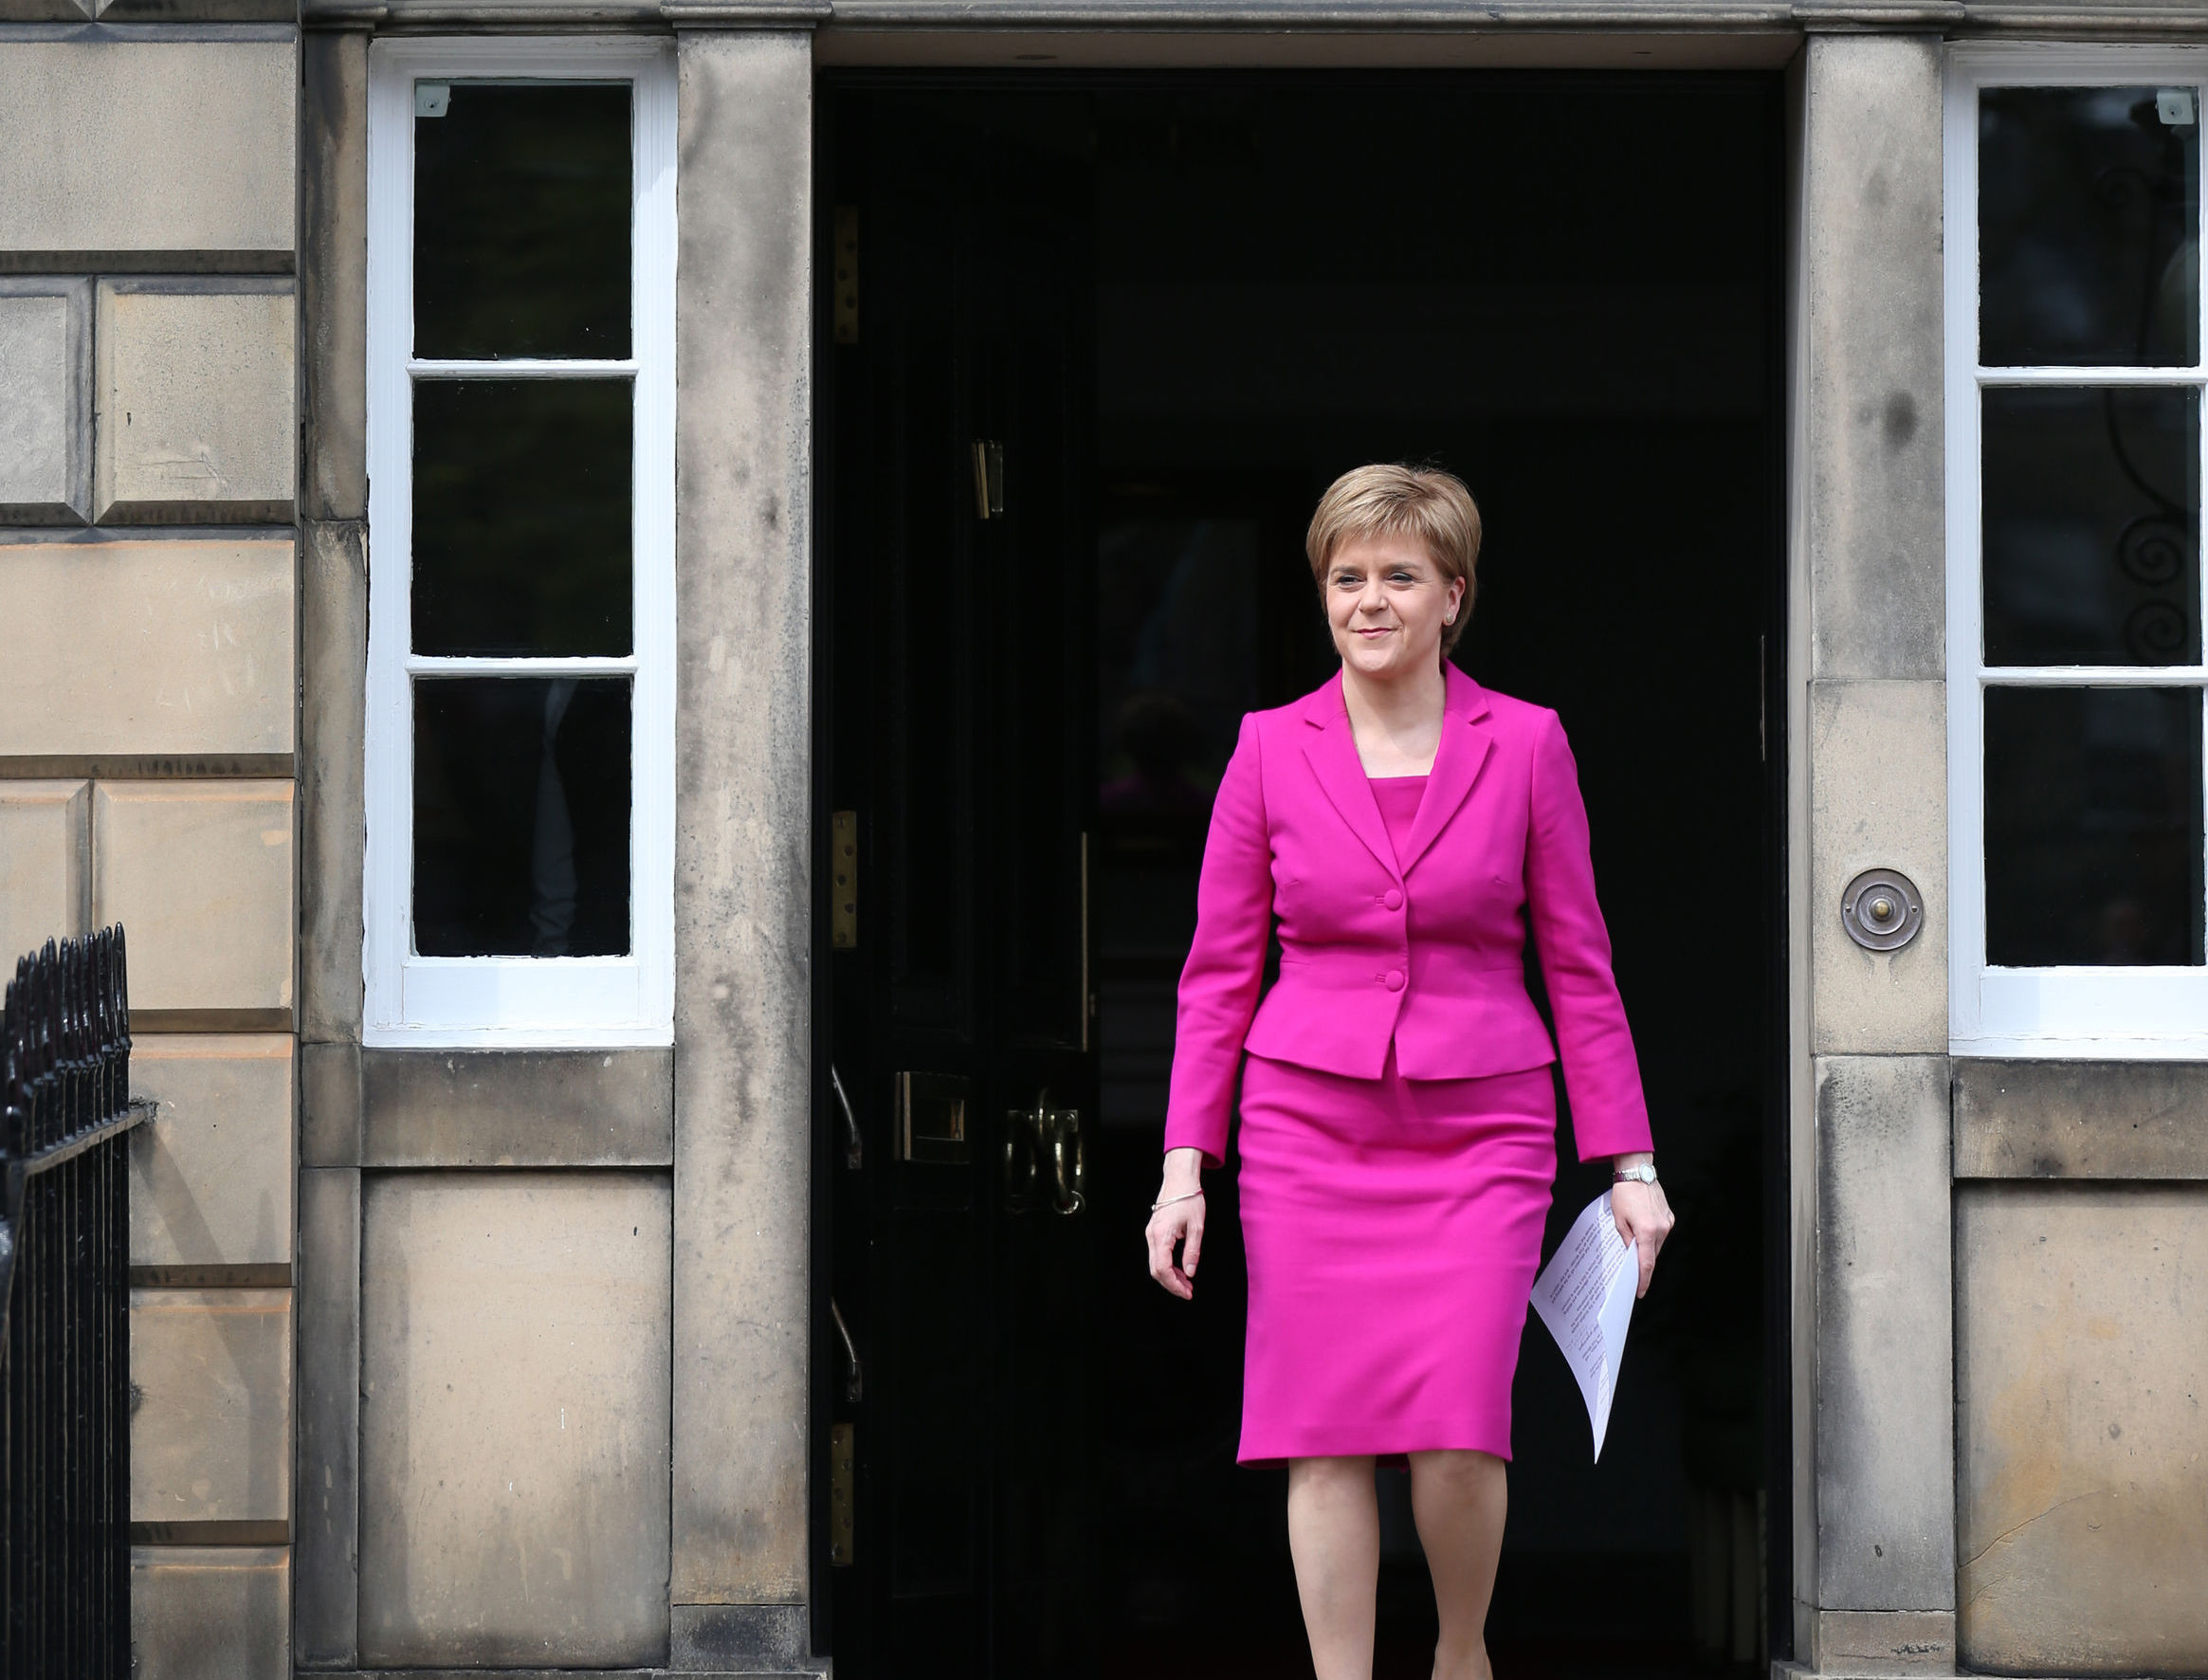 Work on Nicola Sturgeon's official residence is complete